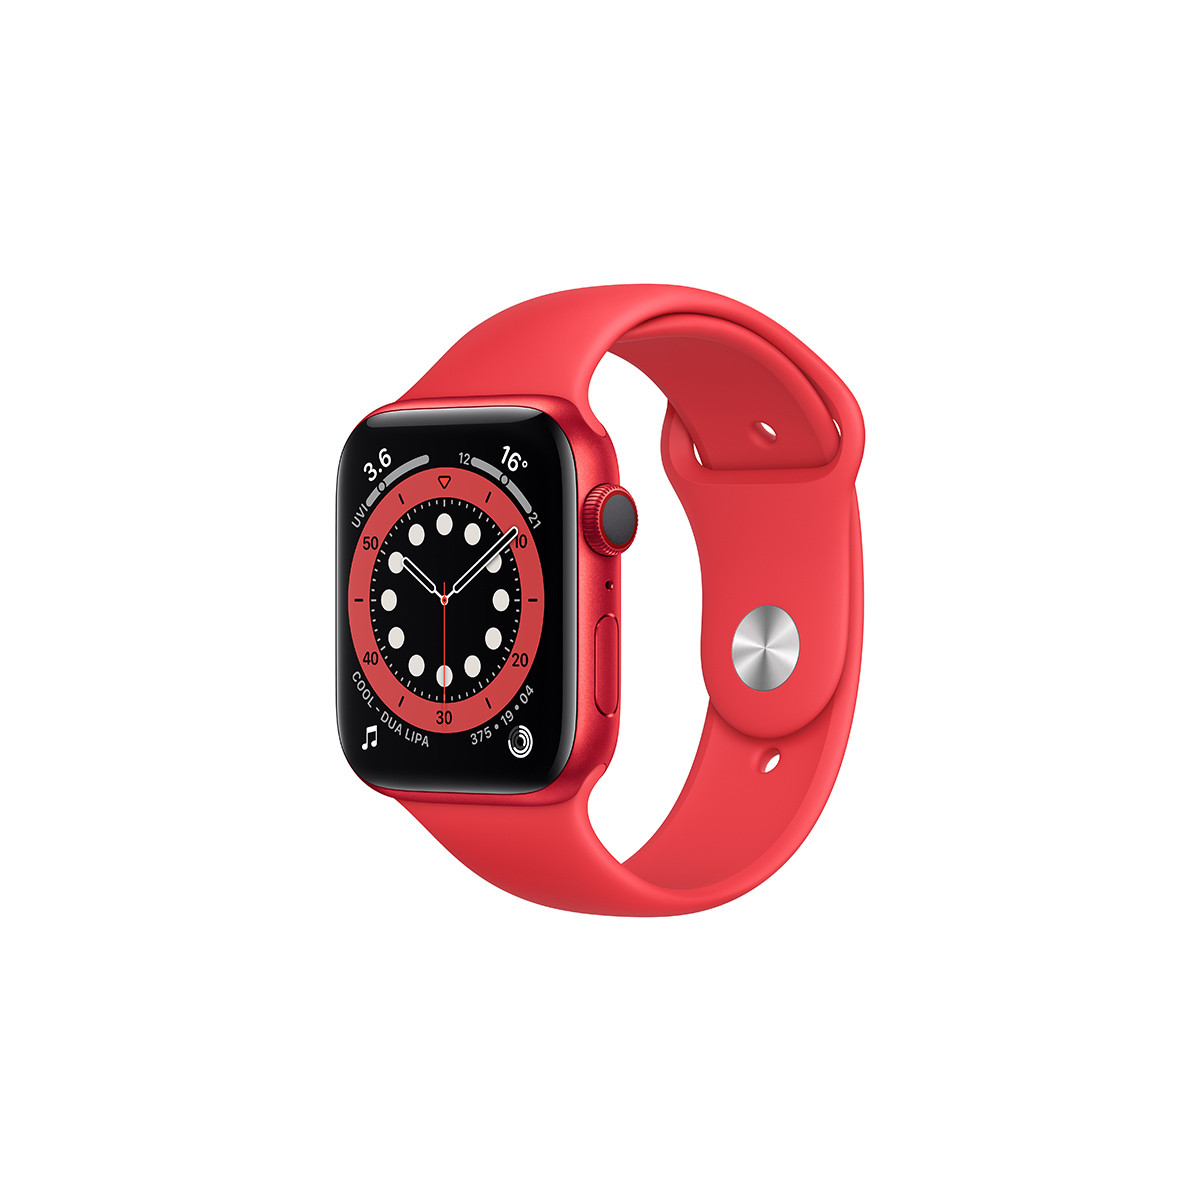 2020款 Apple Watch Series 6 GPS+蜂窝款 智能手表